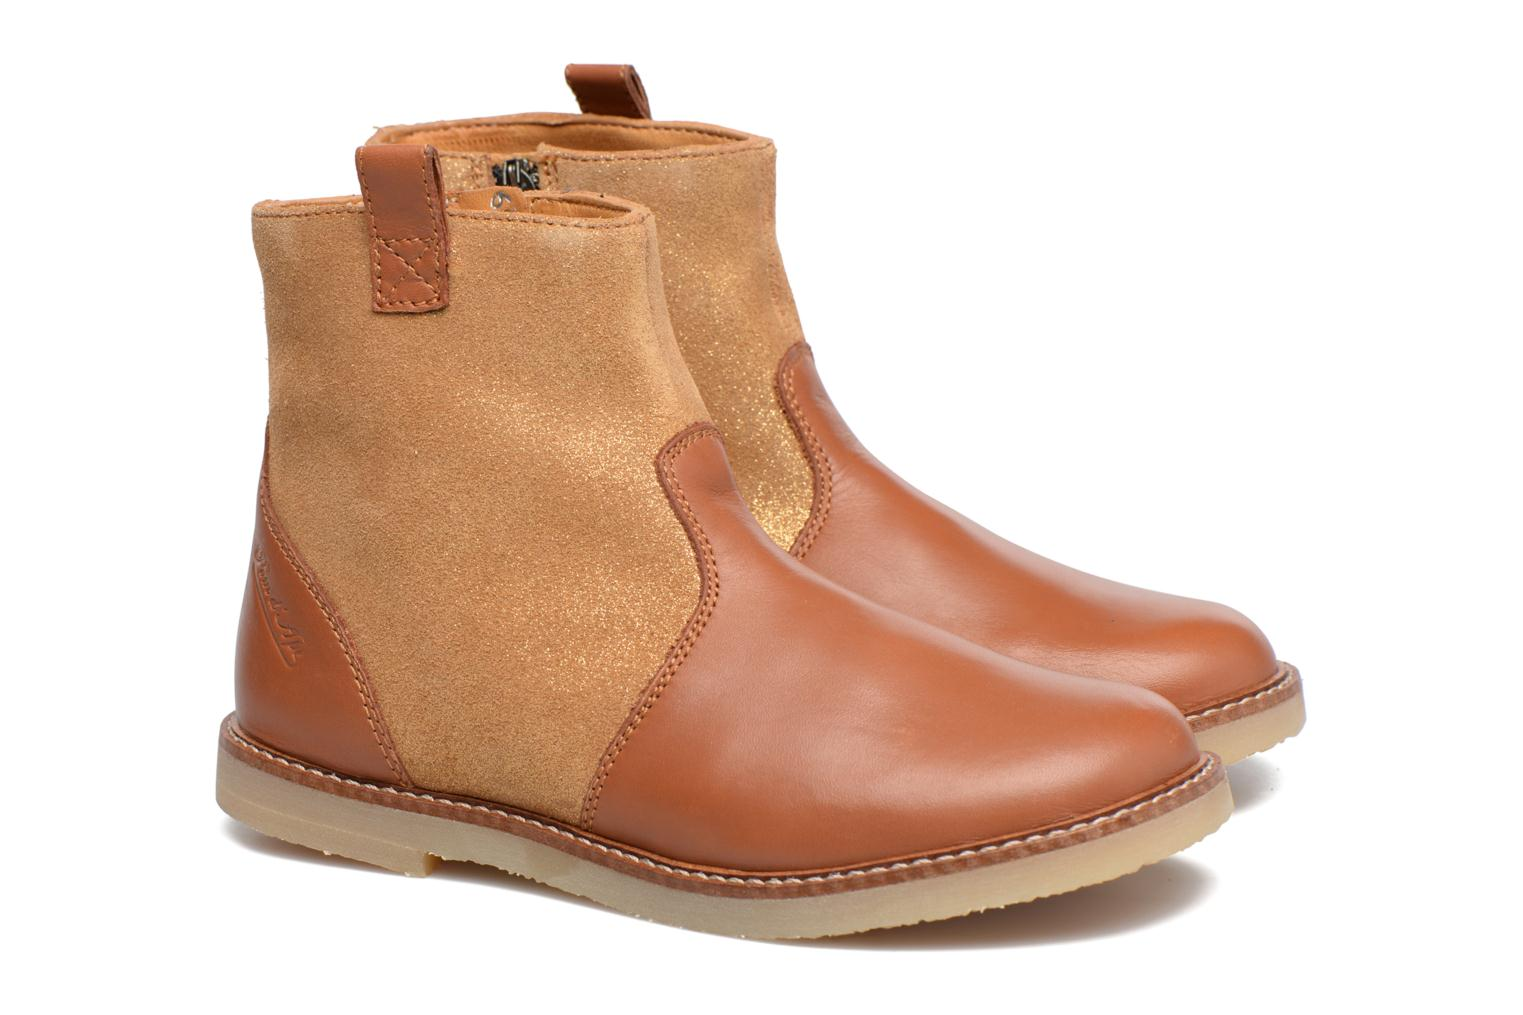 Patex Boots Iseo - Golder Camel